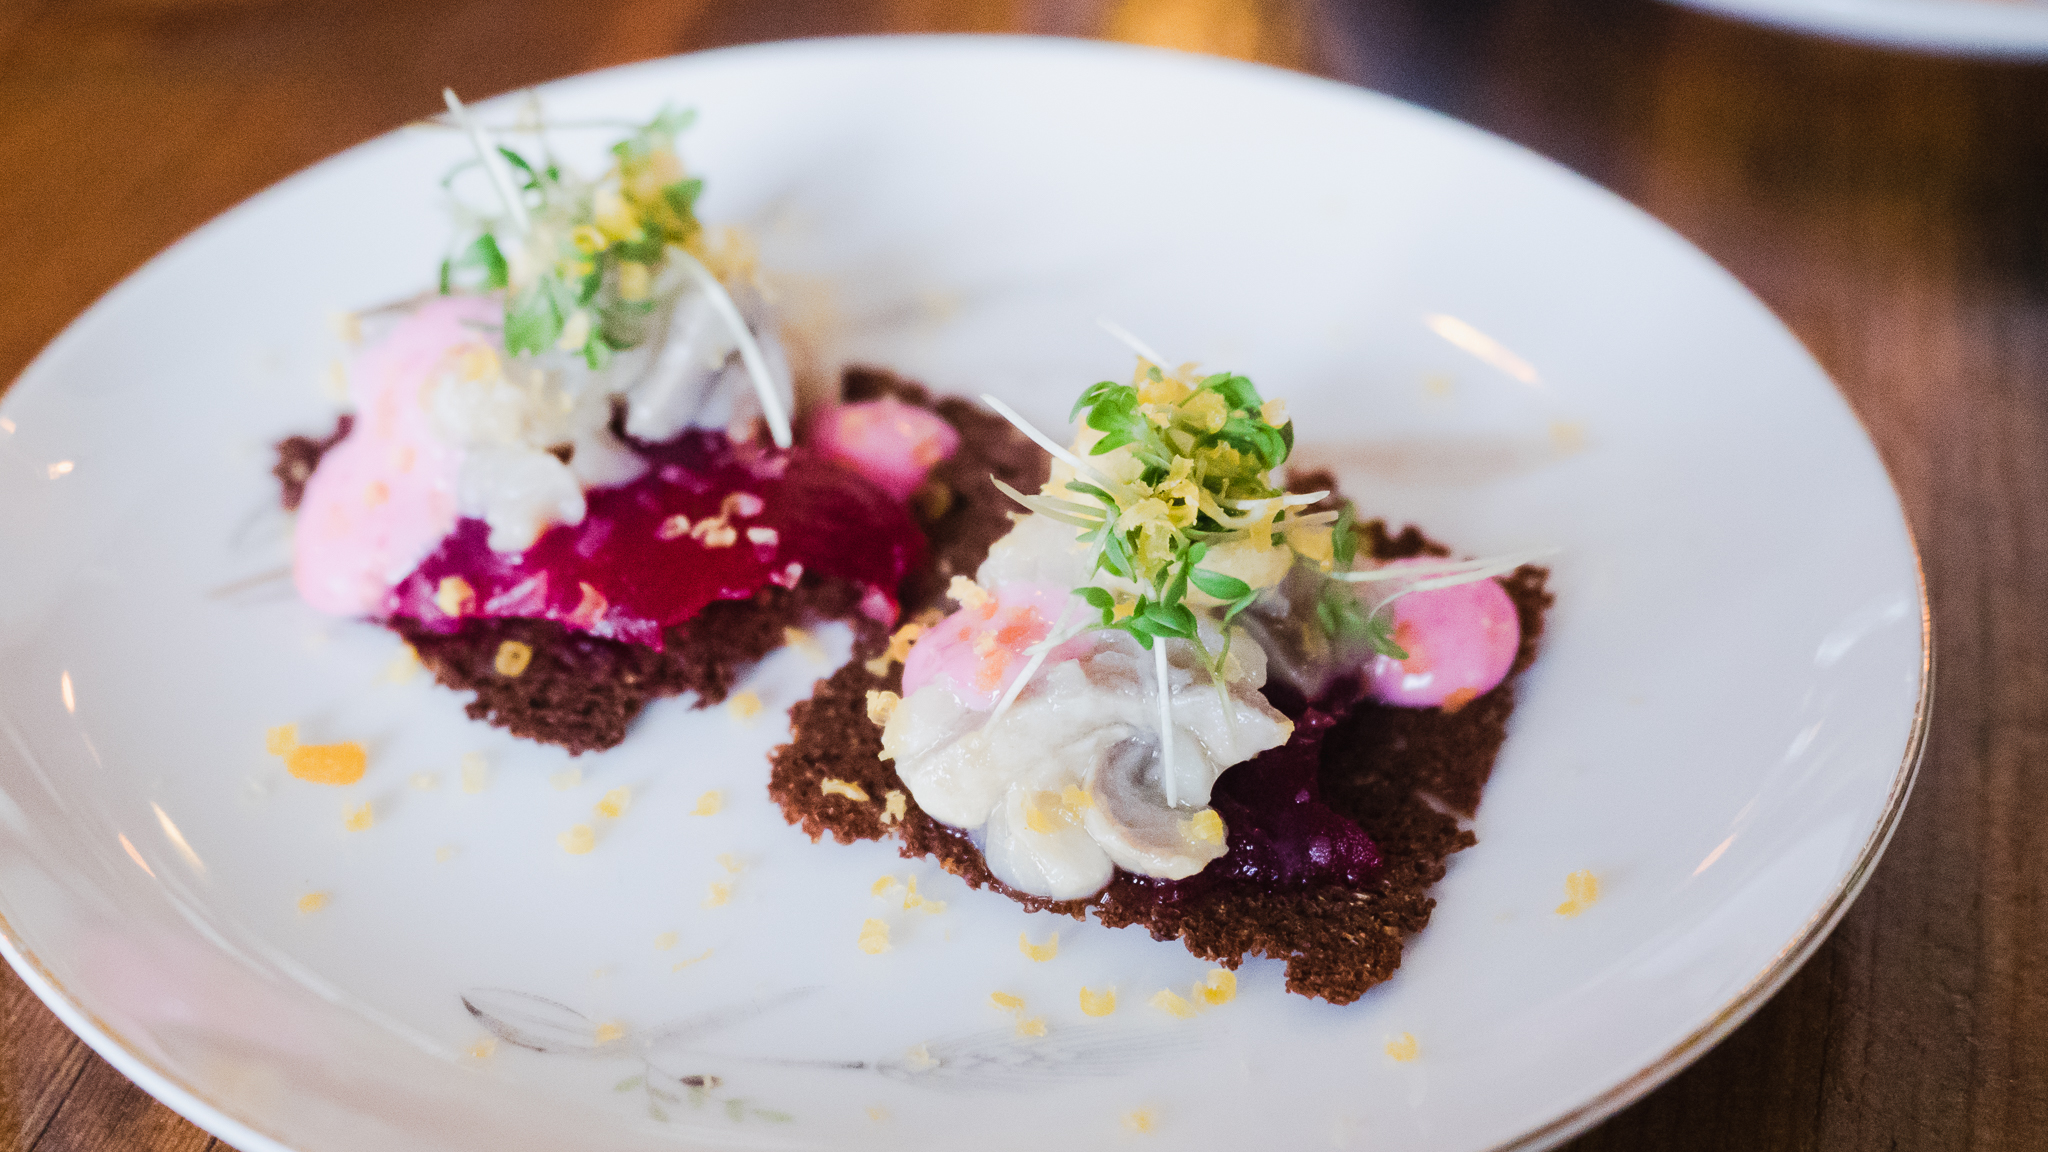 course 3, seafood menu. pickled herring, rye bread, beets and cured egg yolk.